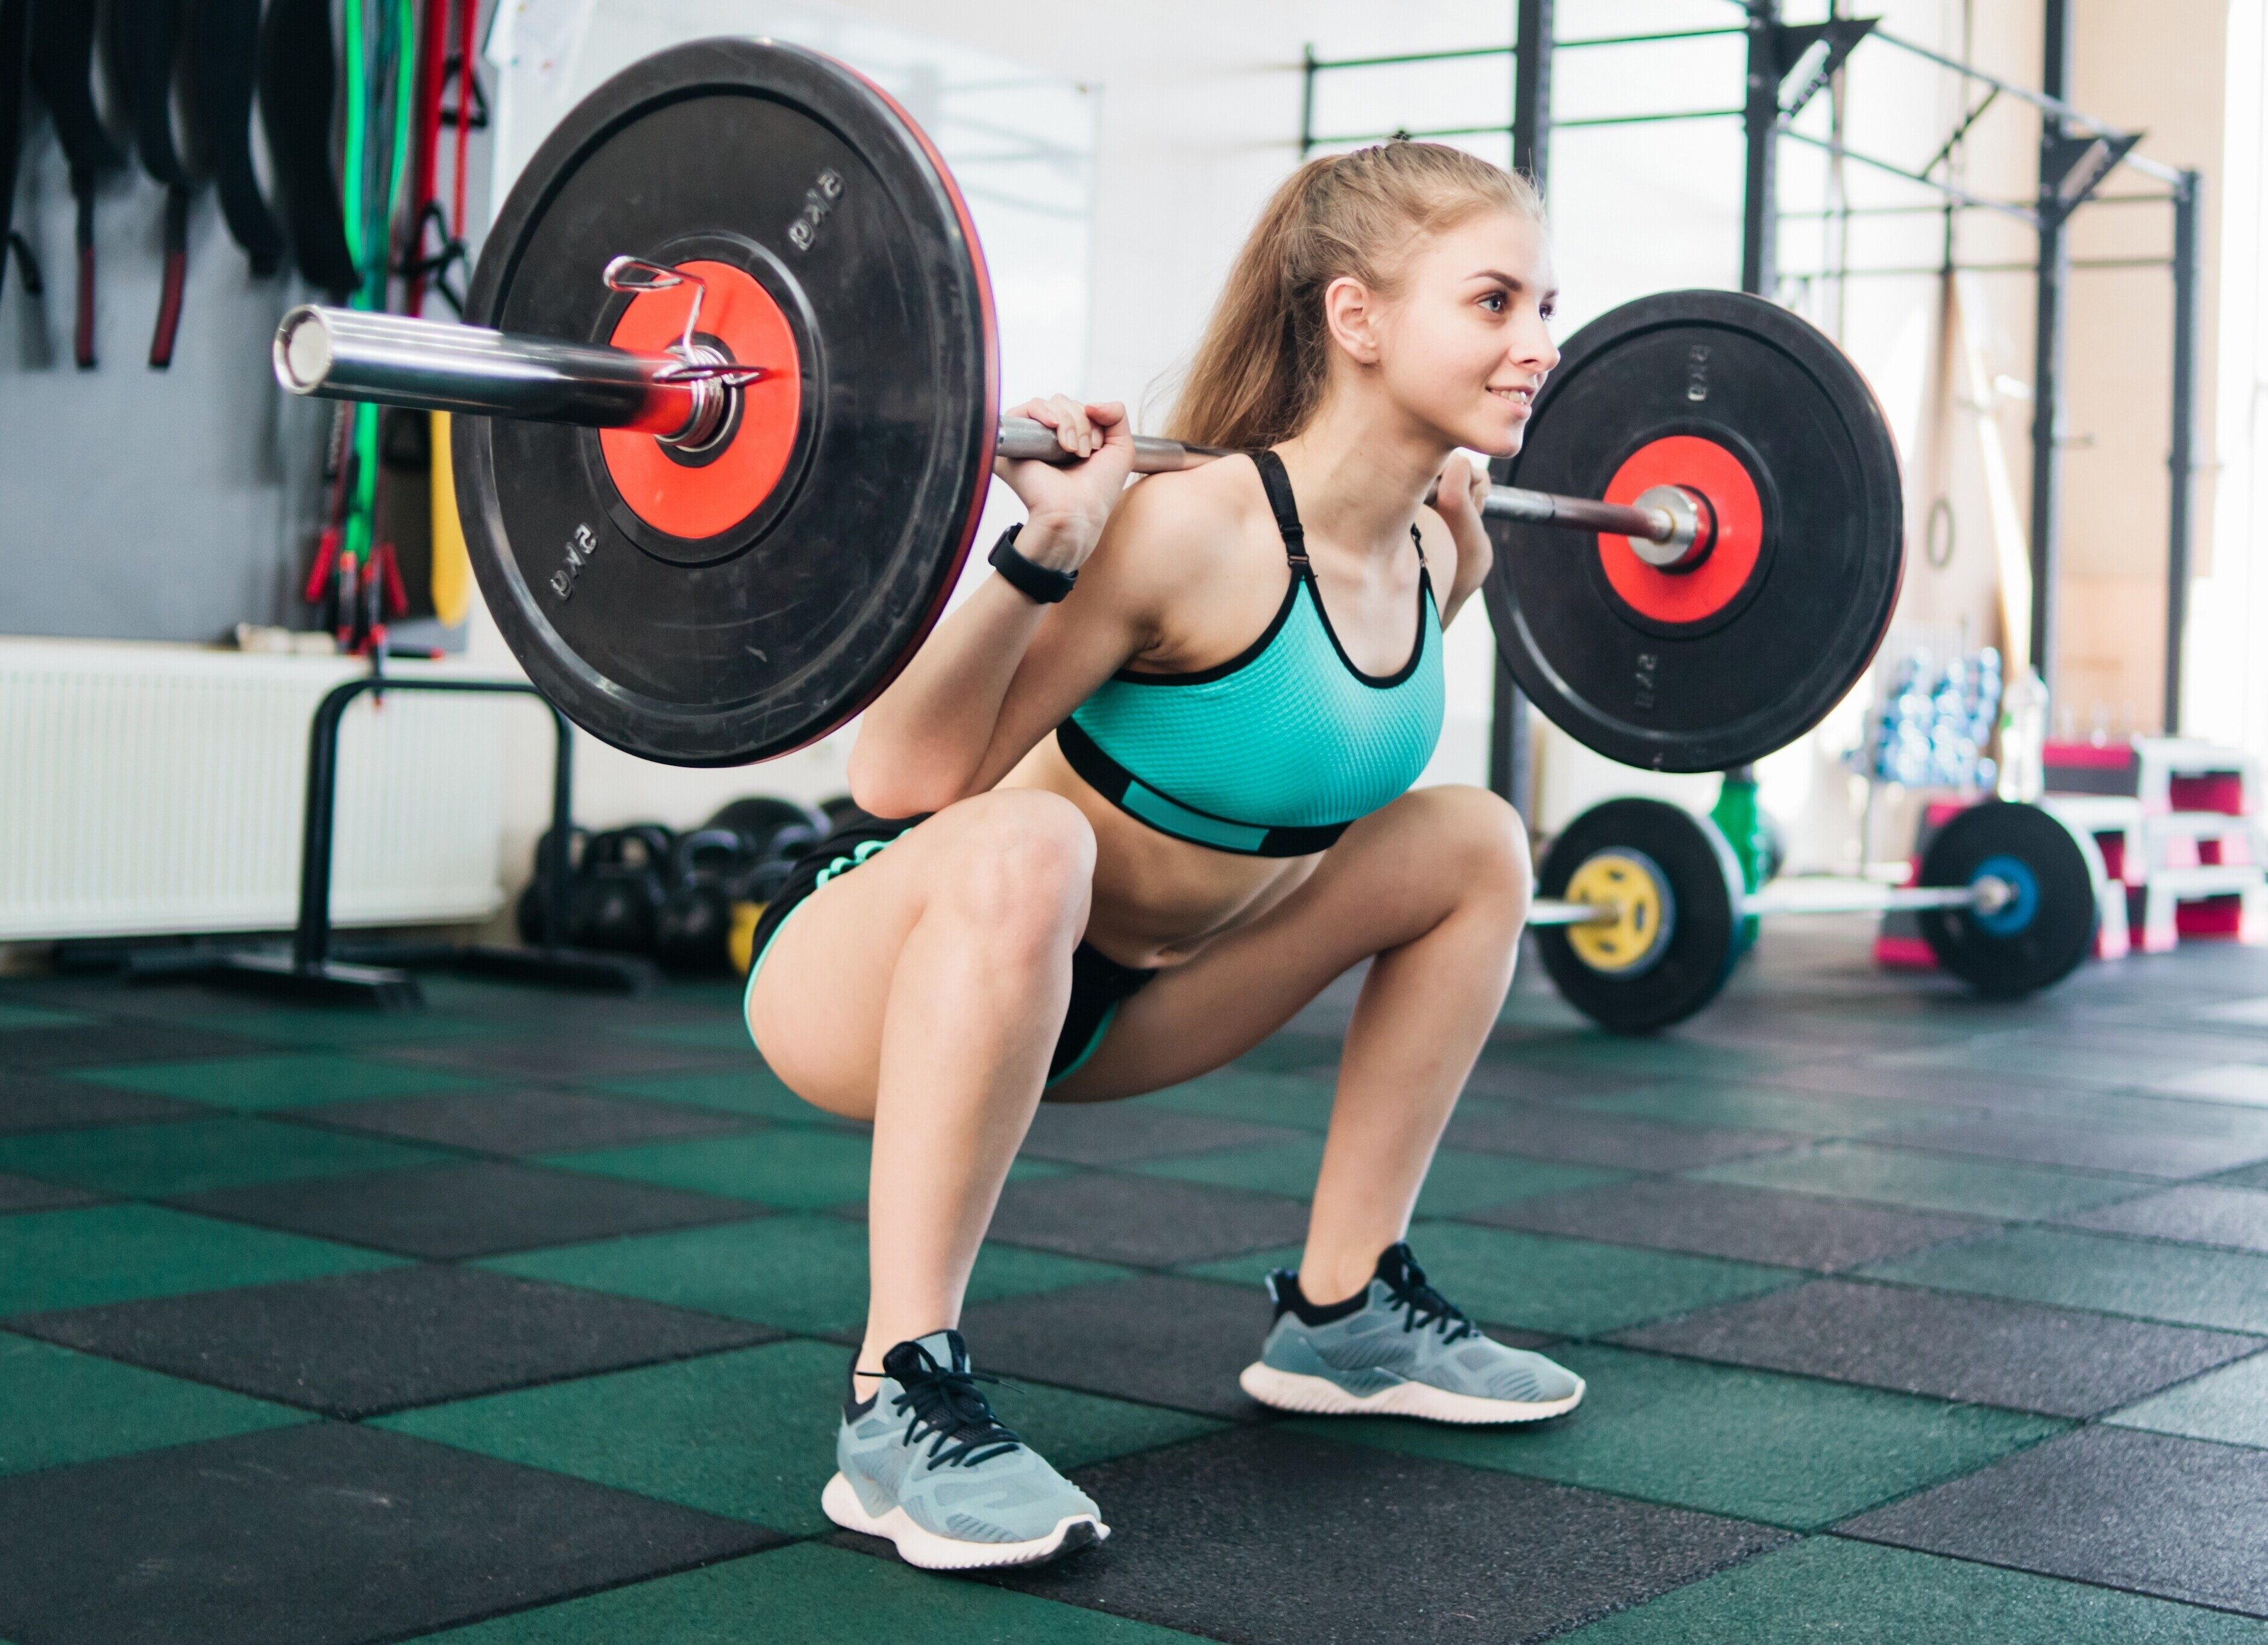 Long Femurs, Short Shins, Short Torso: Squat HELL